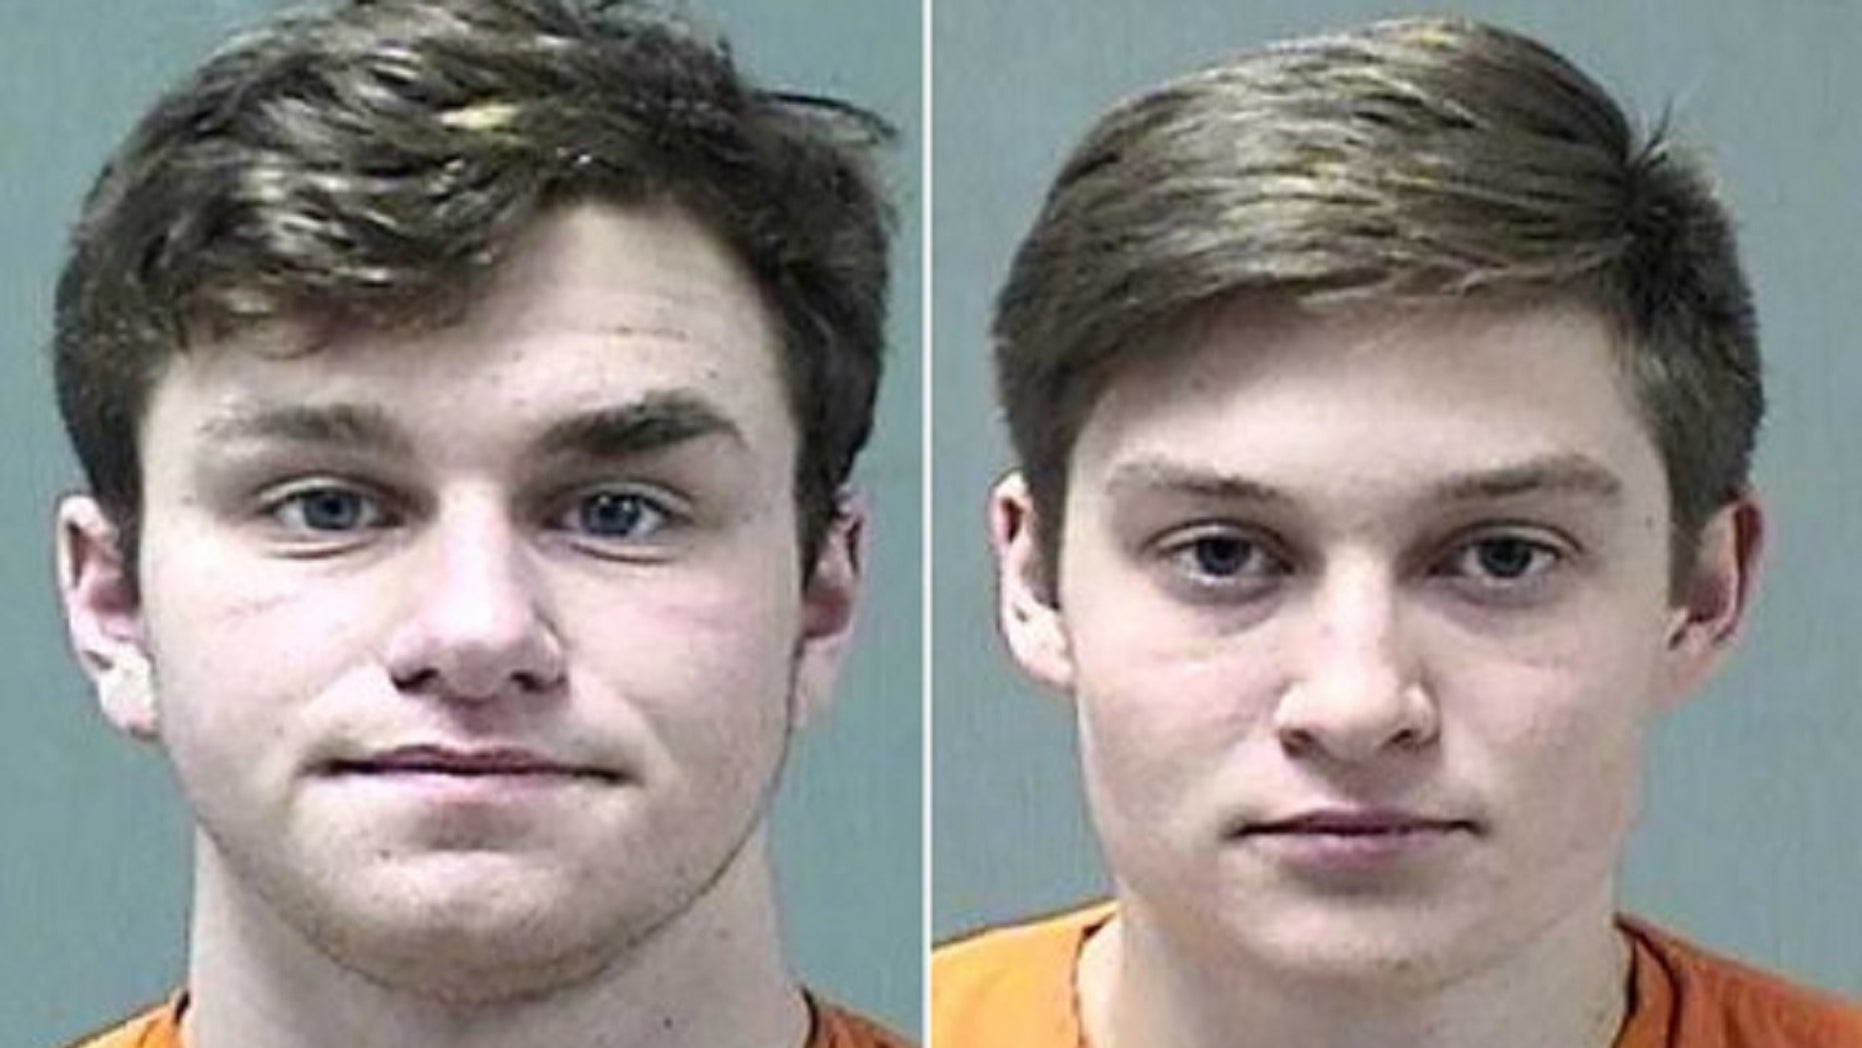 Willard Hartman (L) and Benjamin Krohn, both 19, were pulled over for a traffic stop when police found five loaded guns in the car Wednesday.